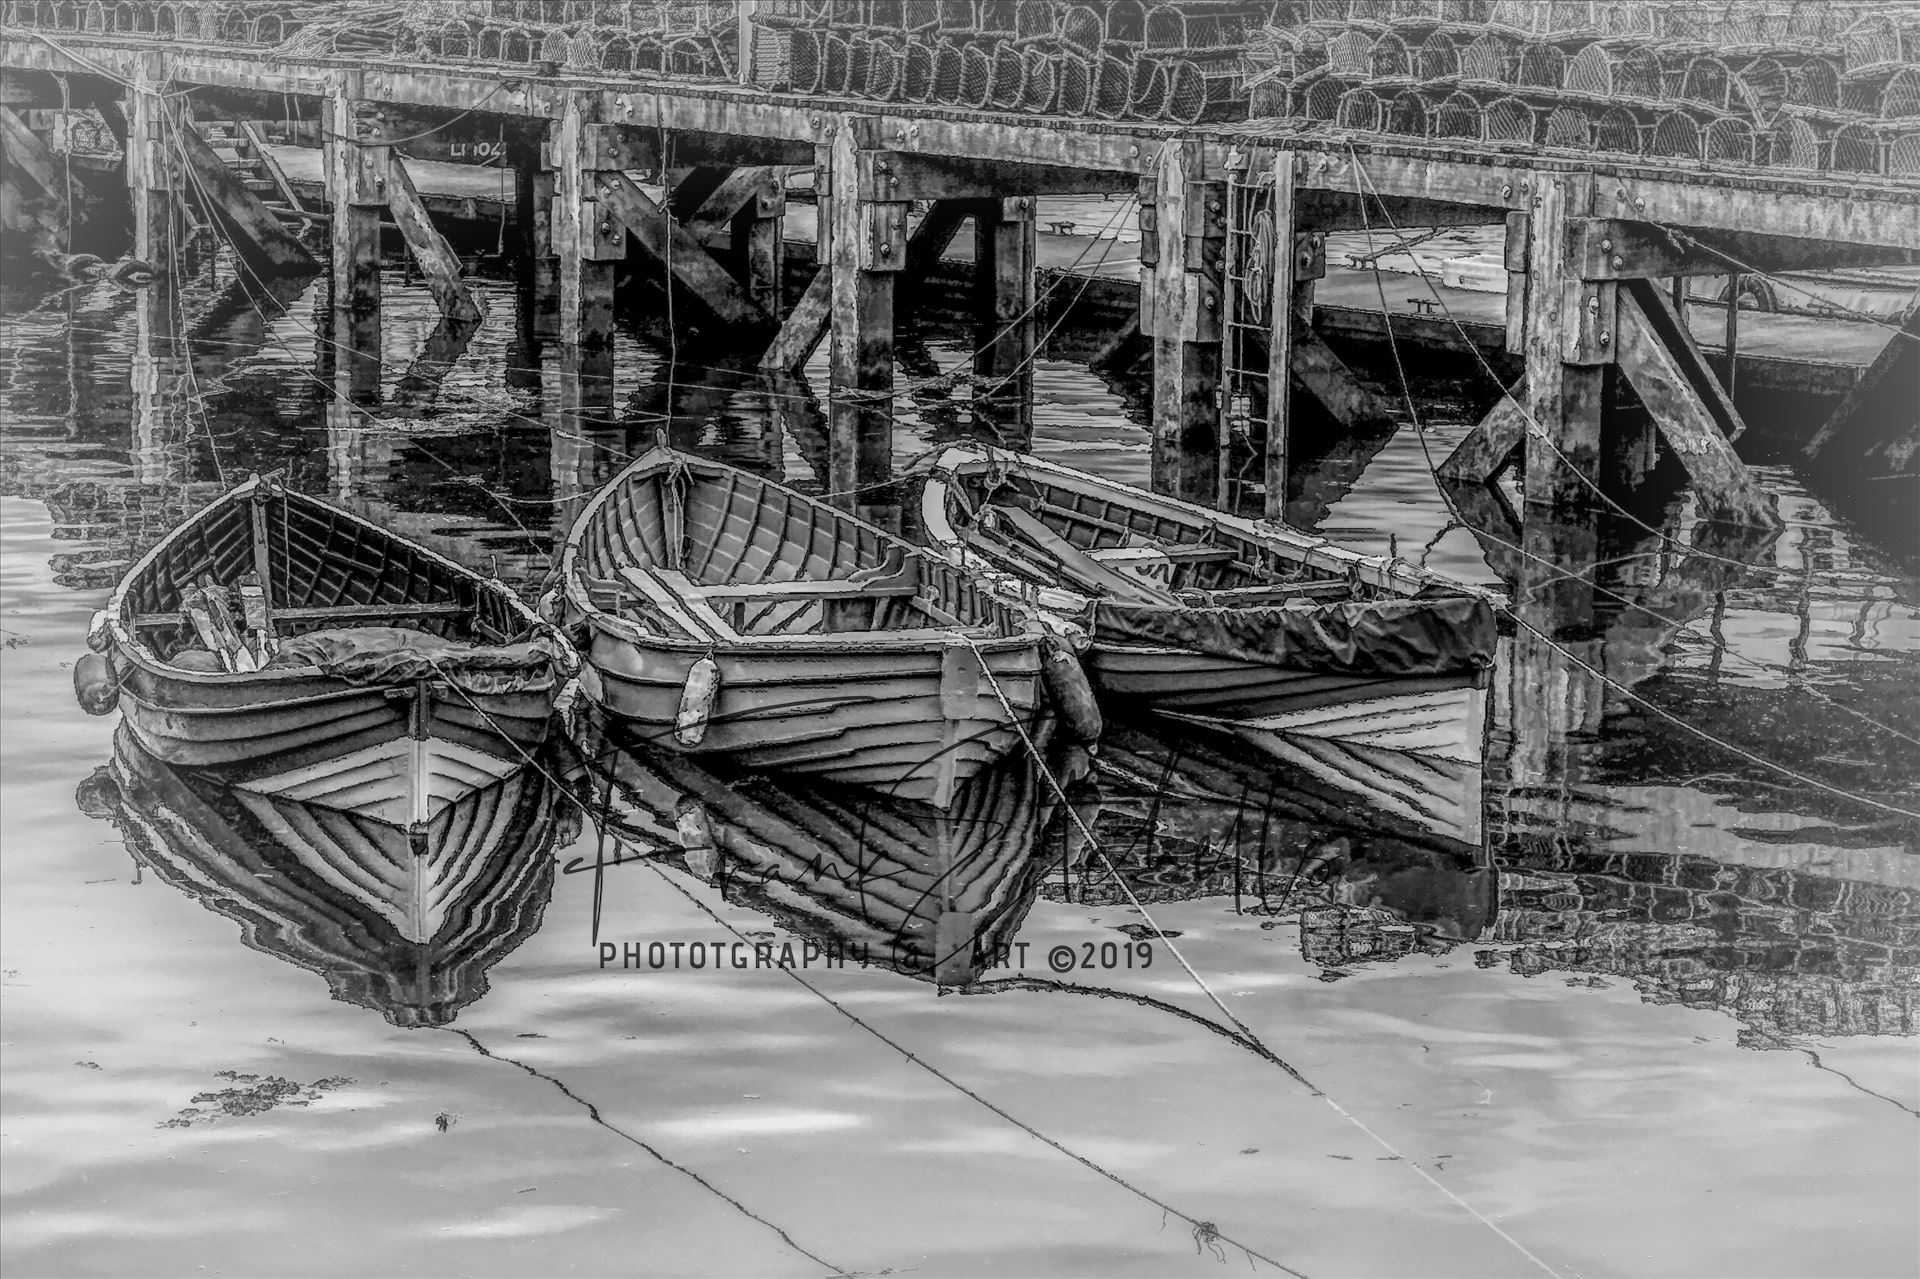 Tethered Boats, Whitby 1, Edit; Cartoon-BWII On a trip to Whitby in Yorkshire in 2012 and a walk through the town brought us to the harbour quay side and these small tethered boats, their bows and ropes reflected in the sea water and lobster pots neatly in stacks on the walkway. 'Cartoon' BWii edit.